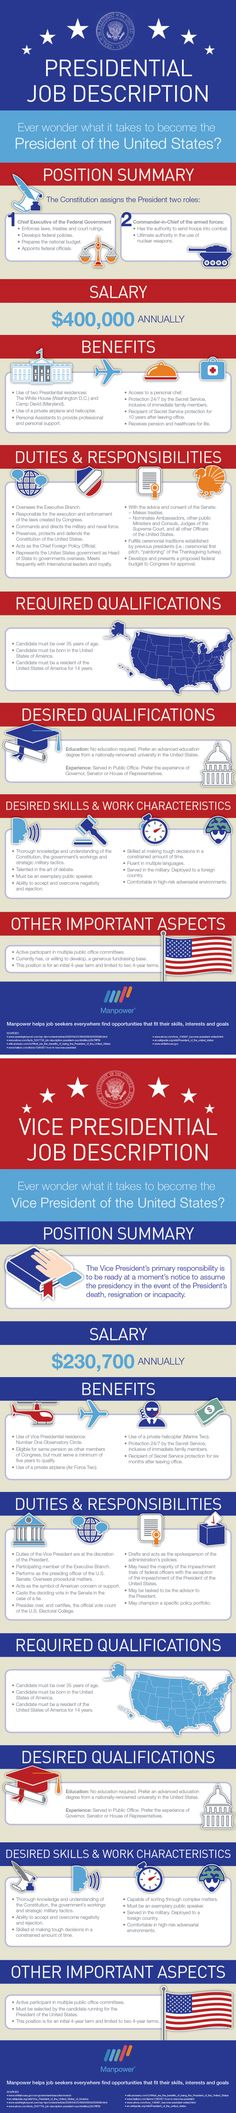 Vp Of Hr Jobcription Template Director Templates Vice President